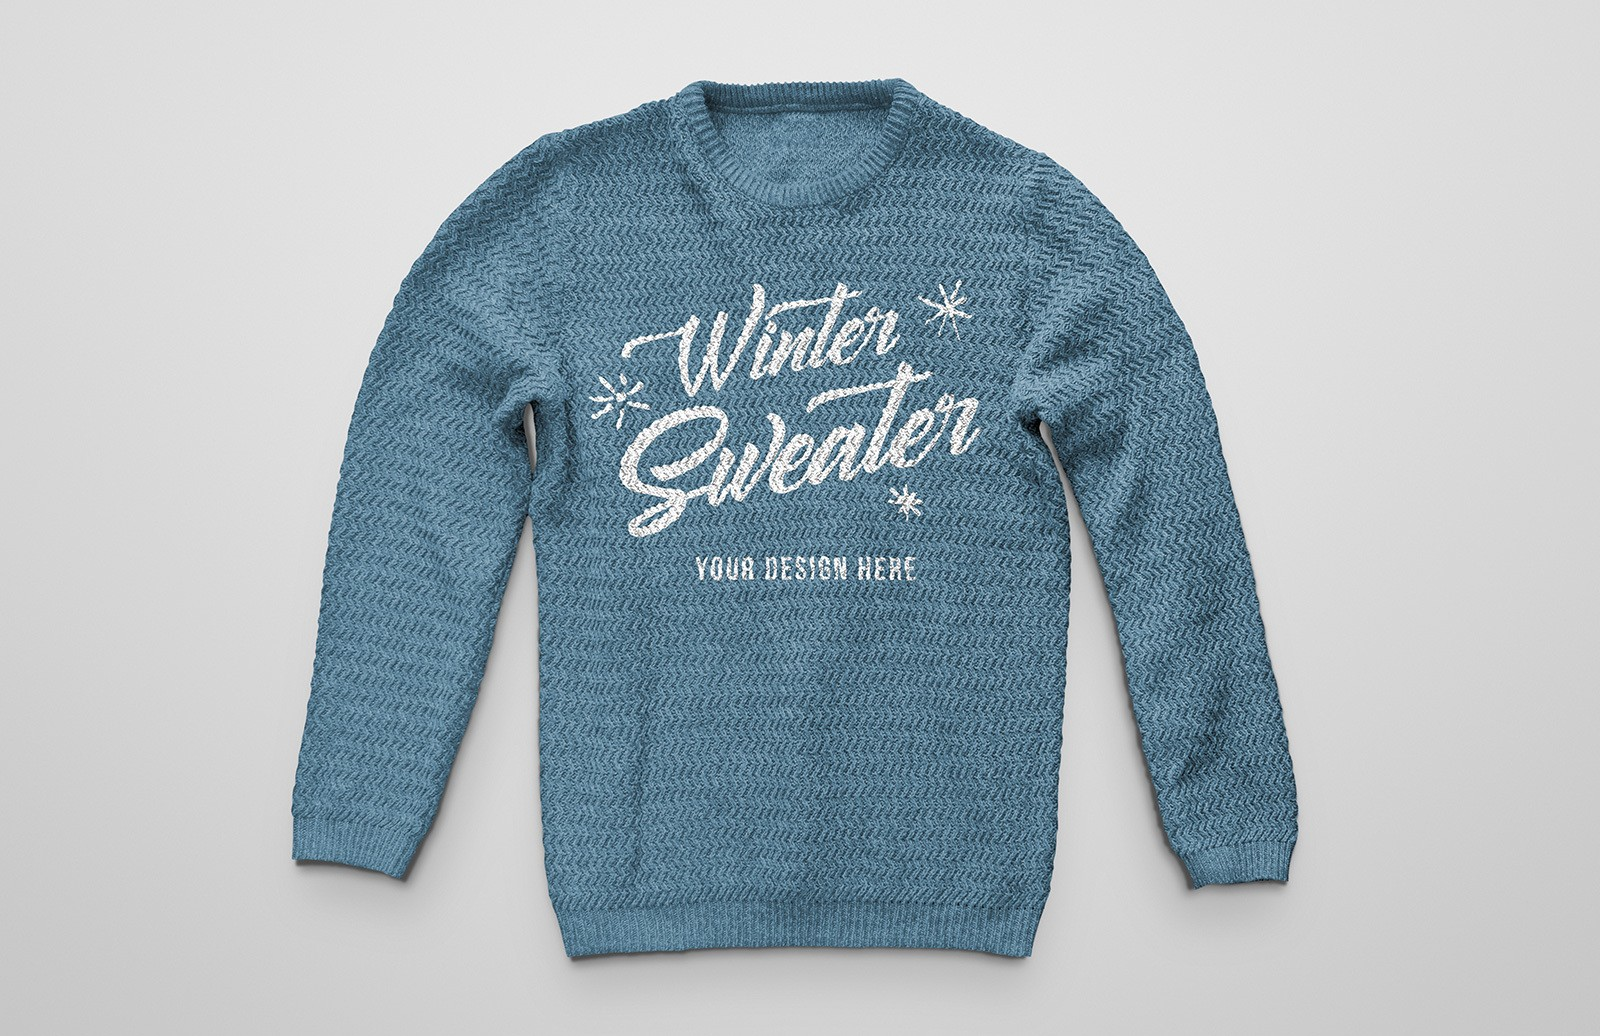 Knitted Winter Sweater Mockup Preview 1